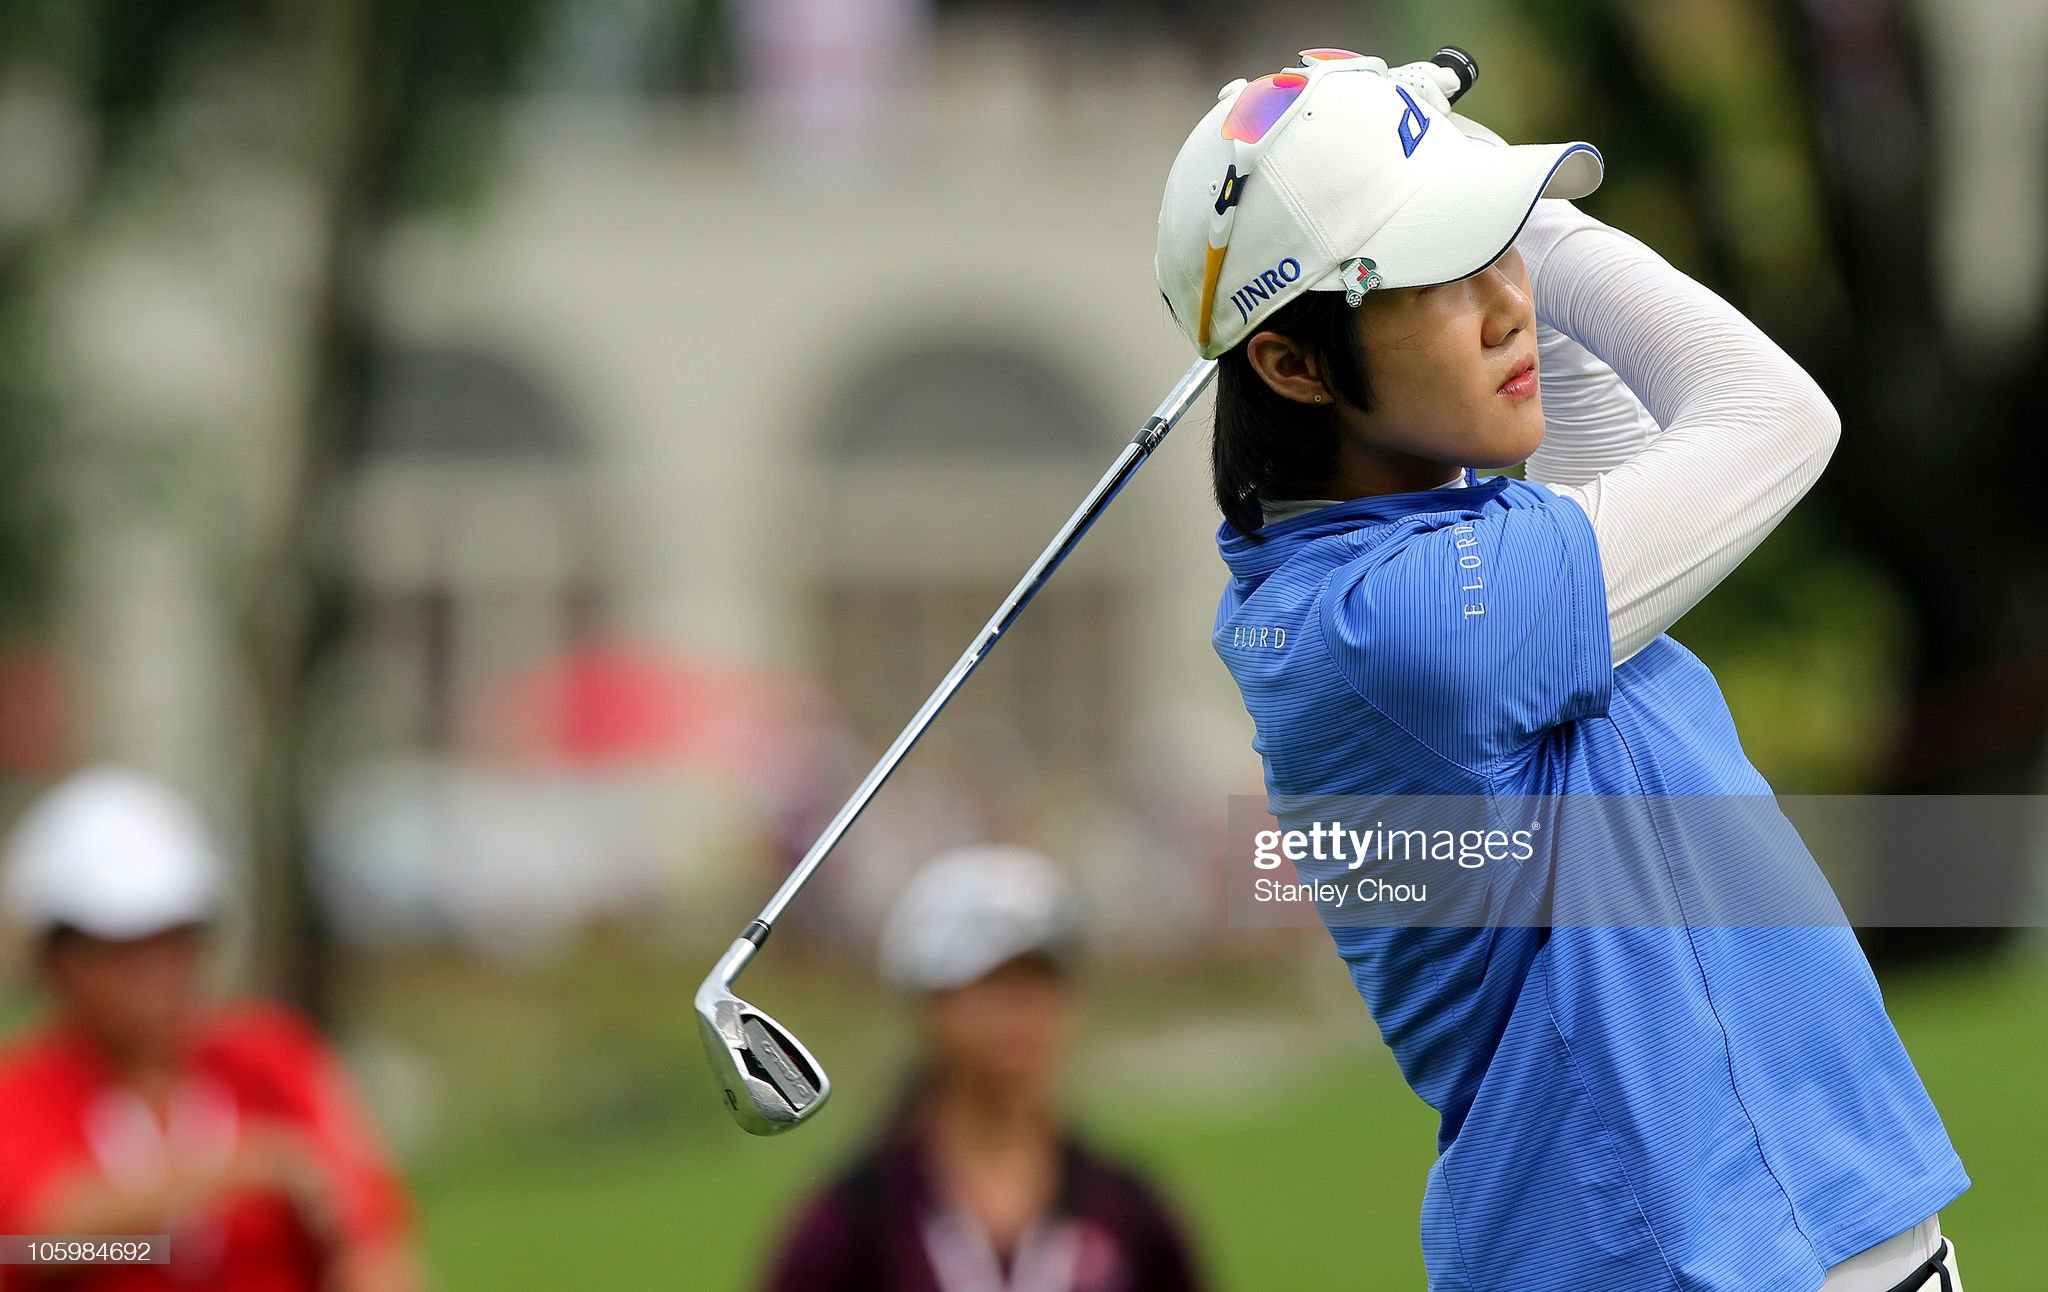 https://media.gettyimages.com/photos/song-hee-kim-of-korea-republic-watches-her-2nd-shot-on-the-1st-hole-picture-id105984692?s=2048x2048